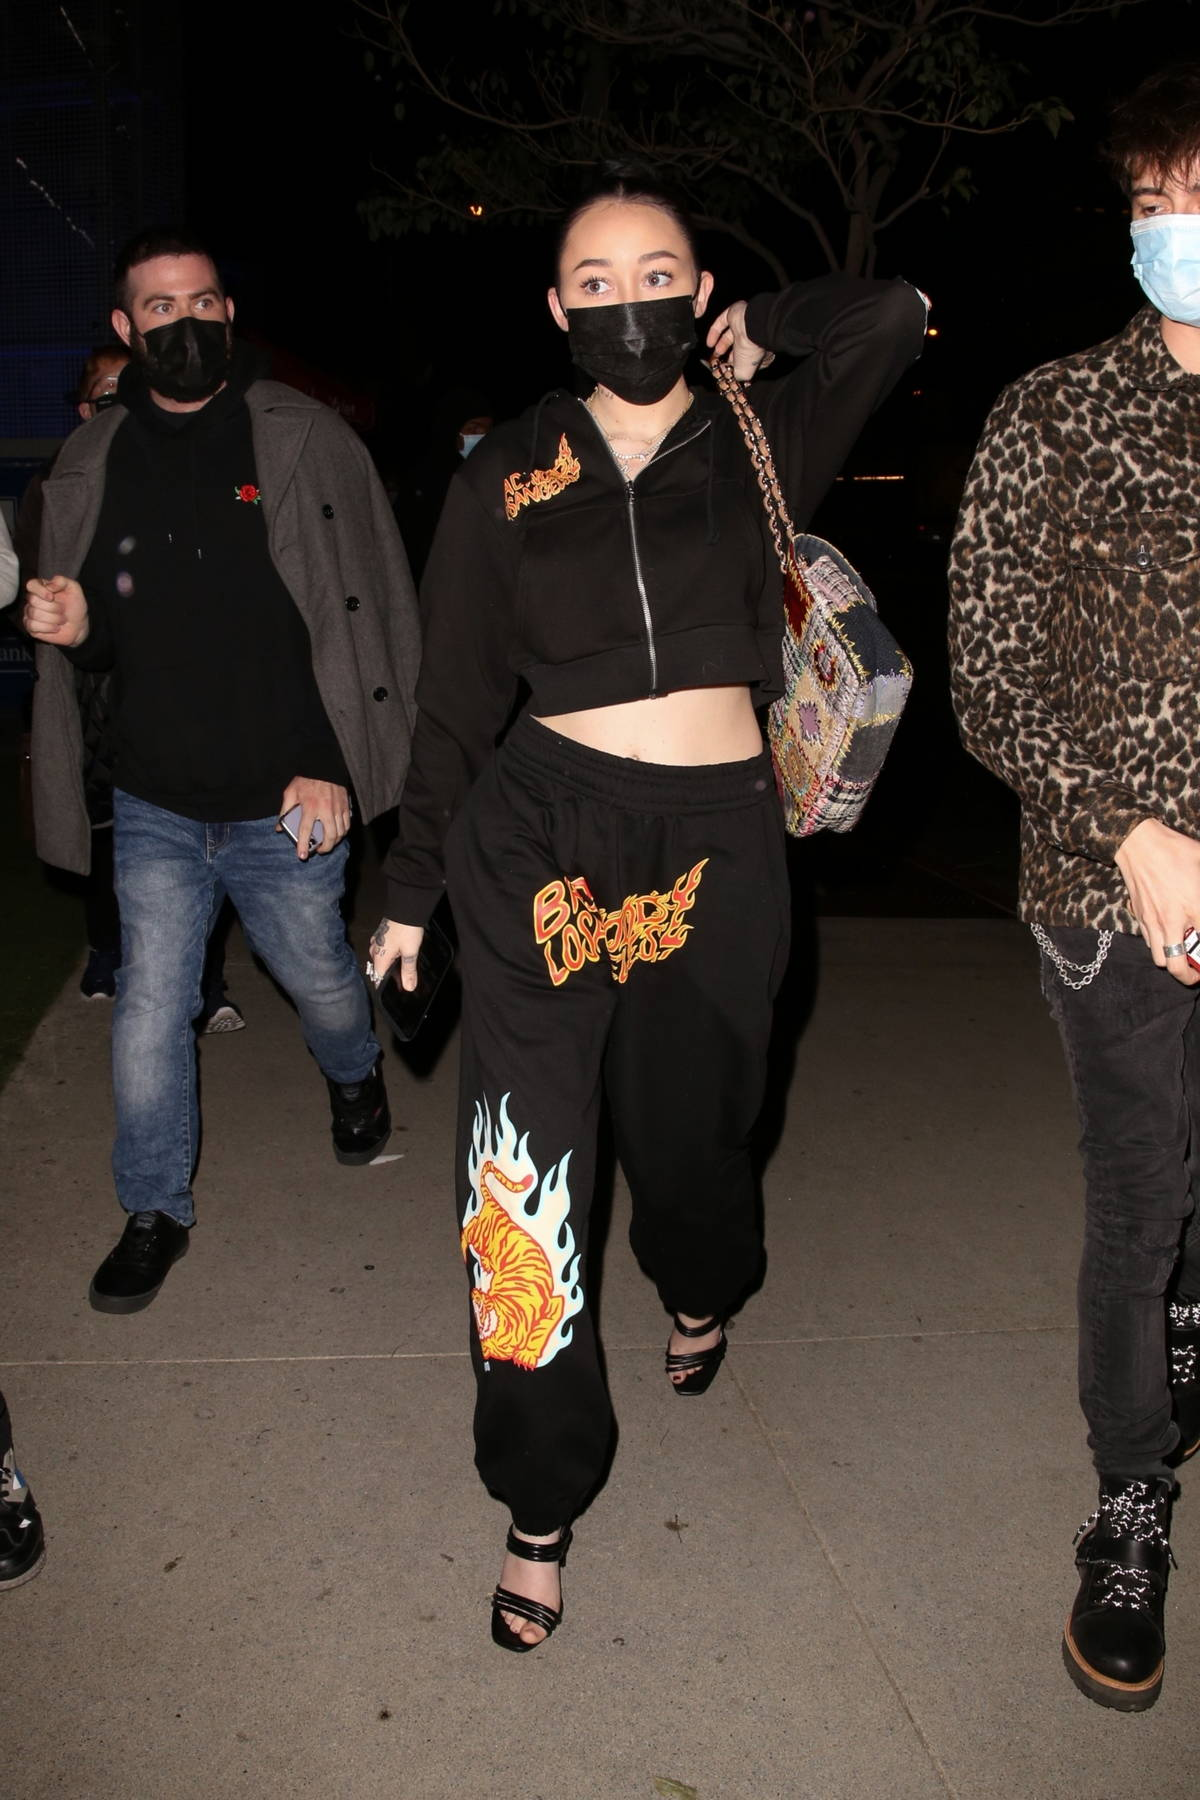 Noah Cyrus seen wearing sweatsuit as she arrives at BOA Steakhouse with Lucas Machado in West Hollywood, California